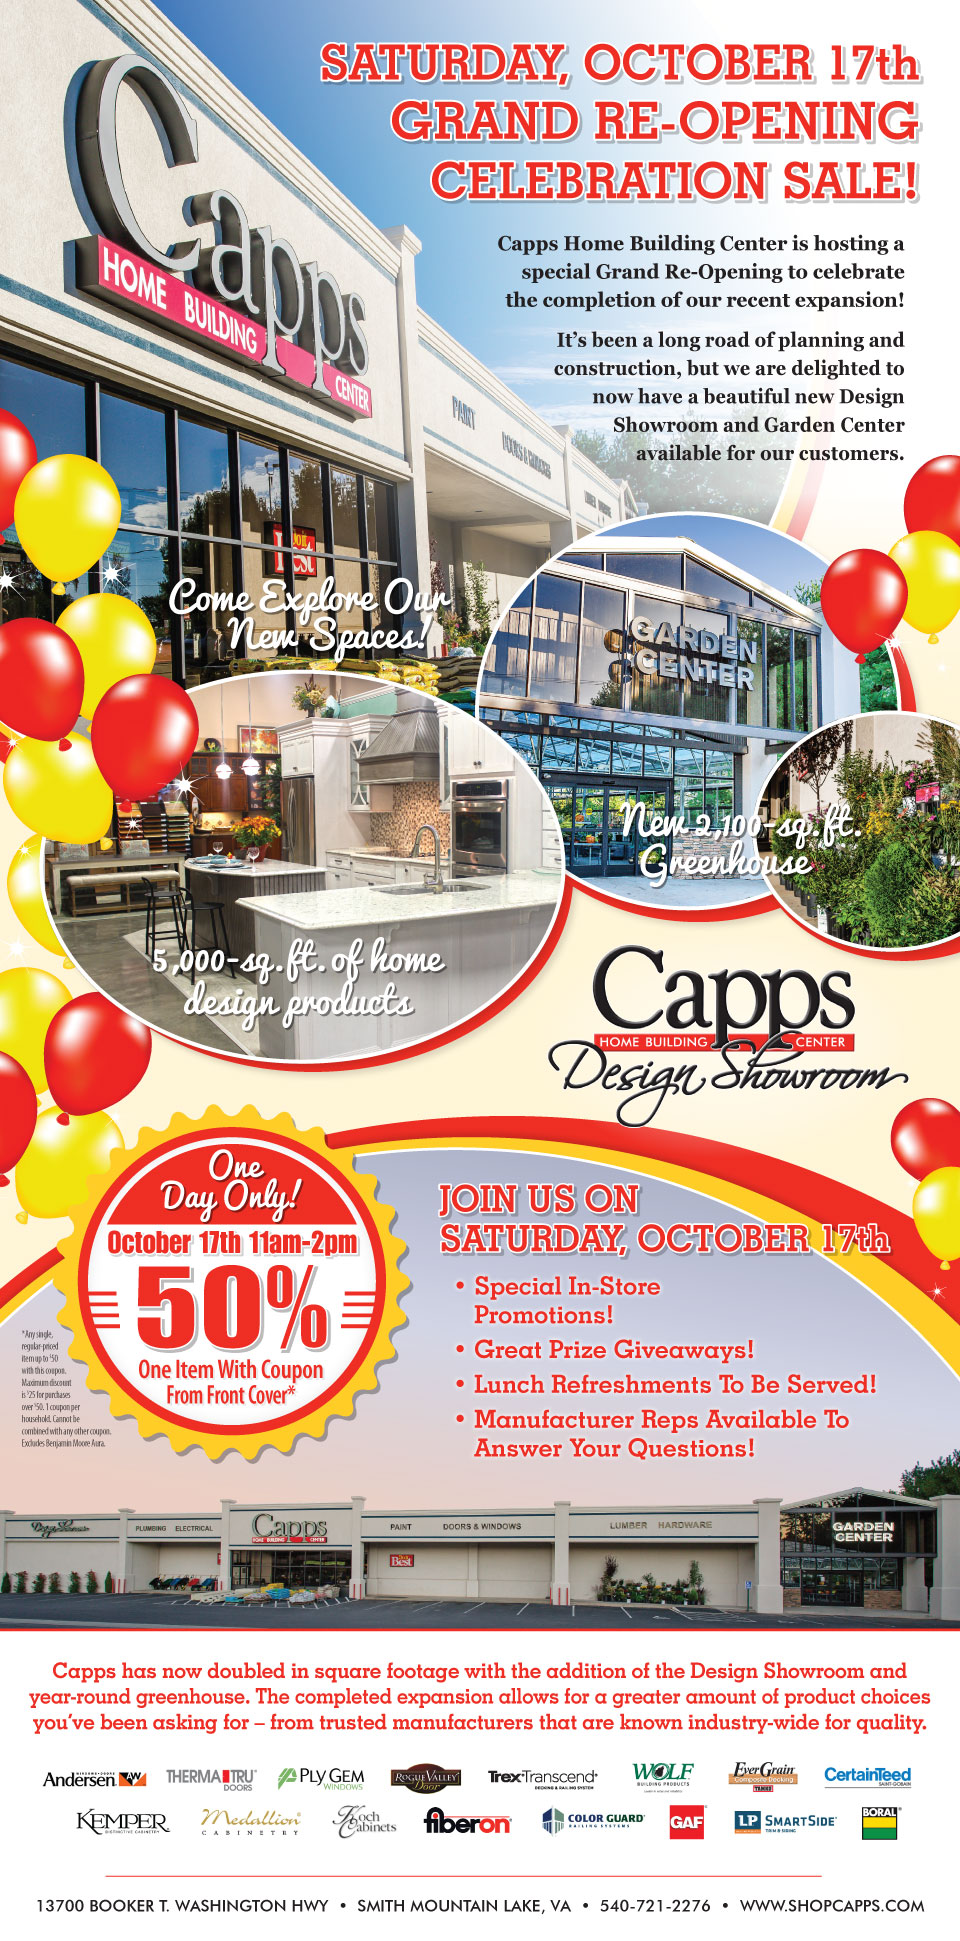 Capps Grand ReOpening Oct 17th, 2015